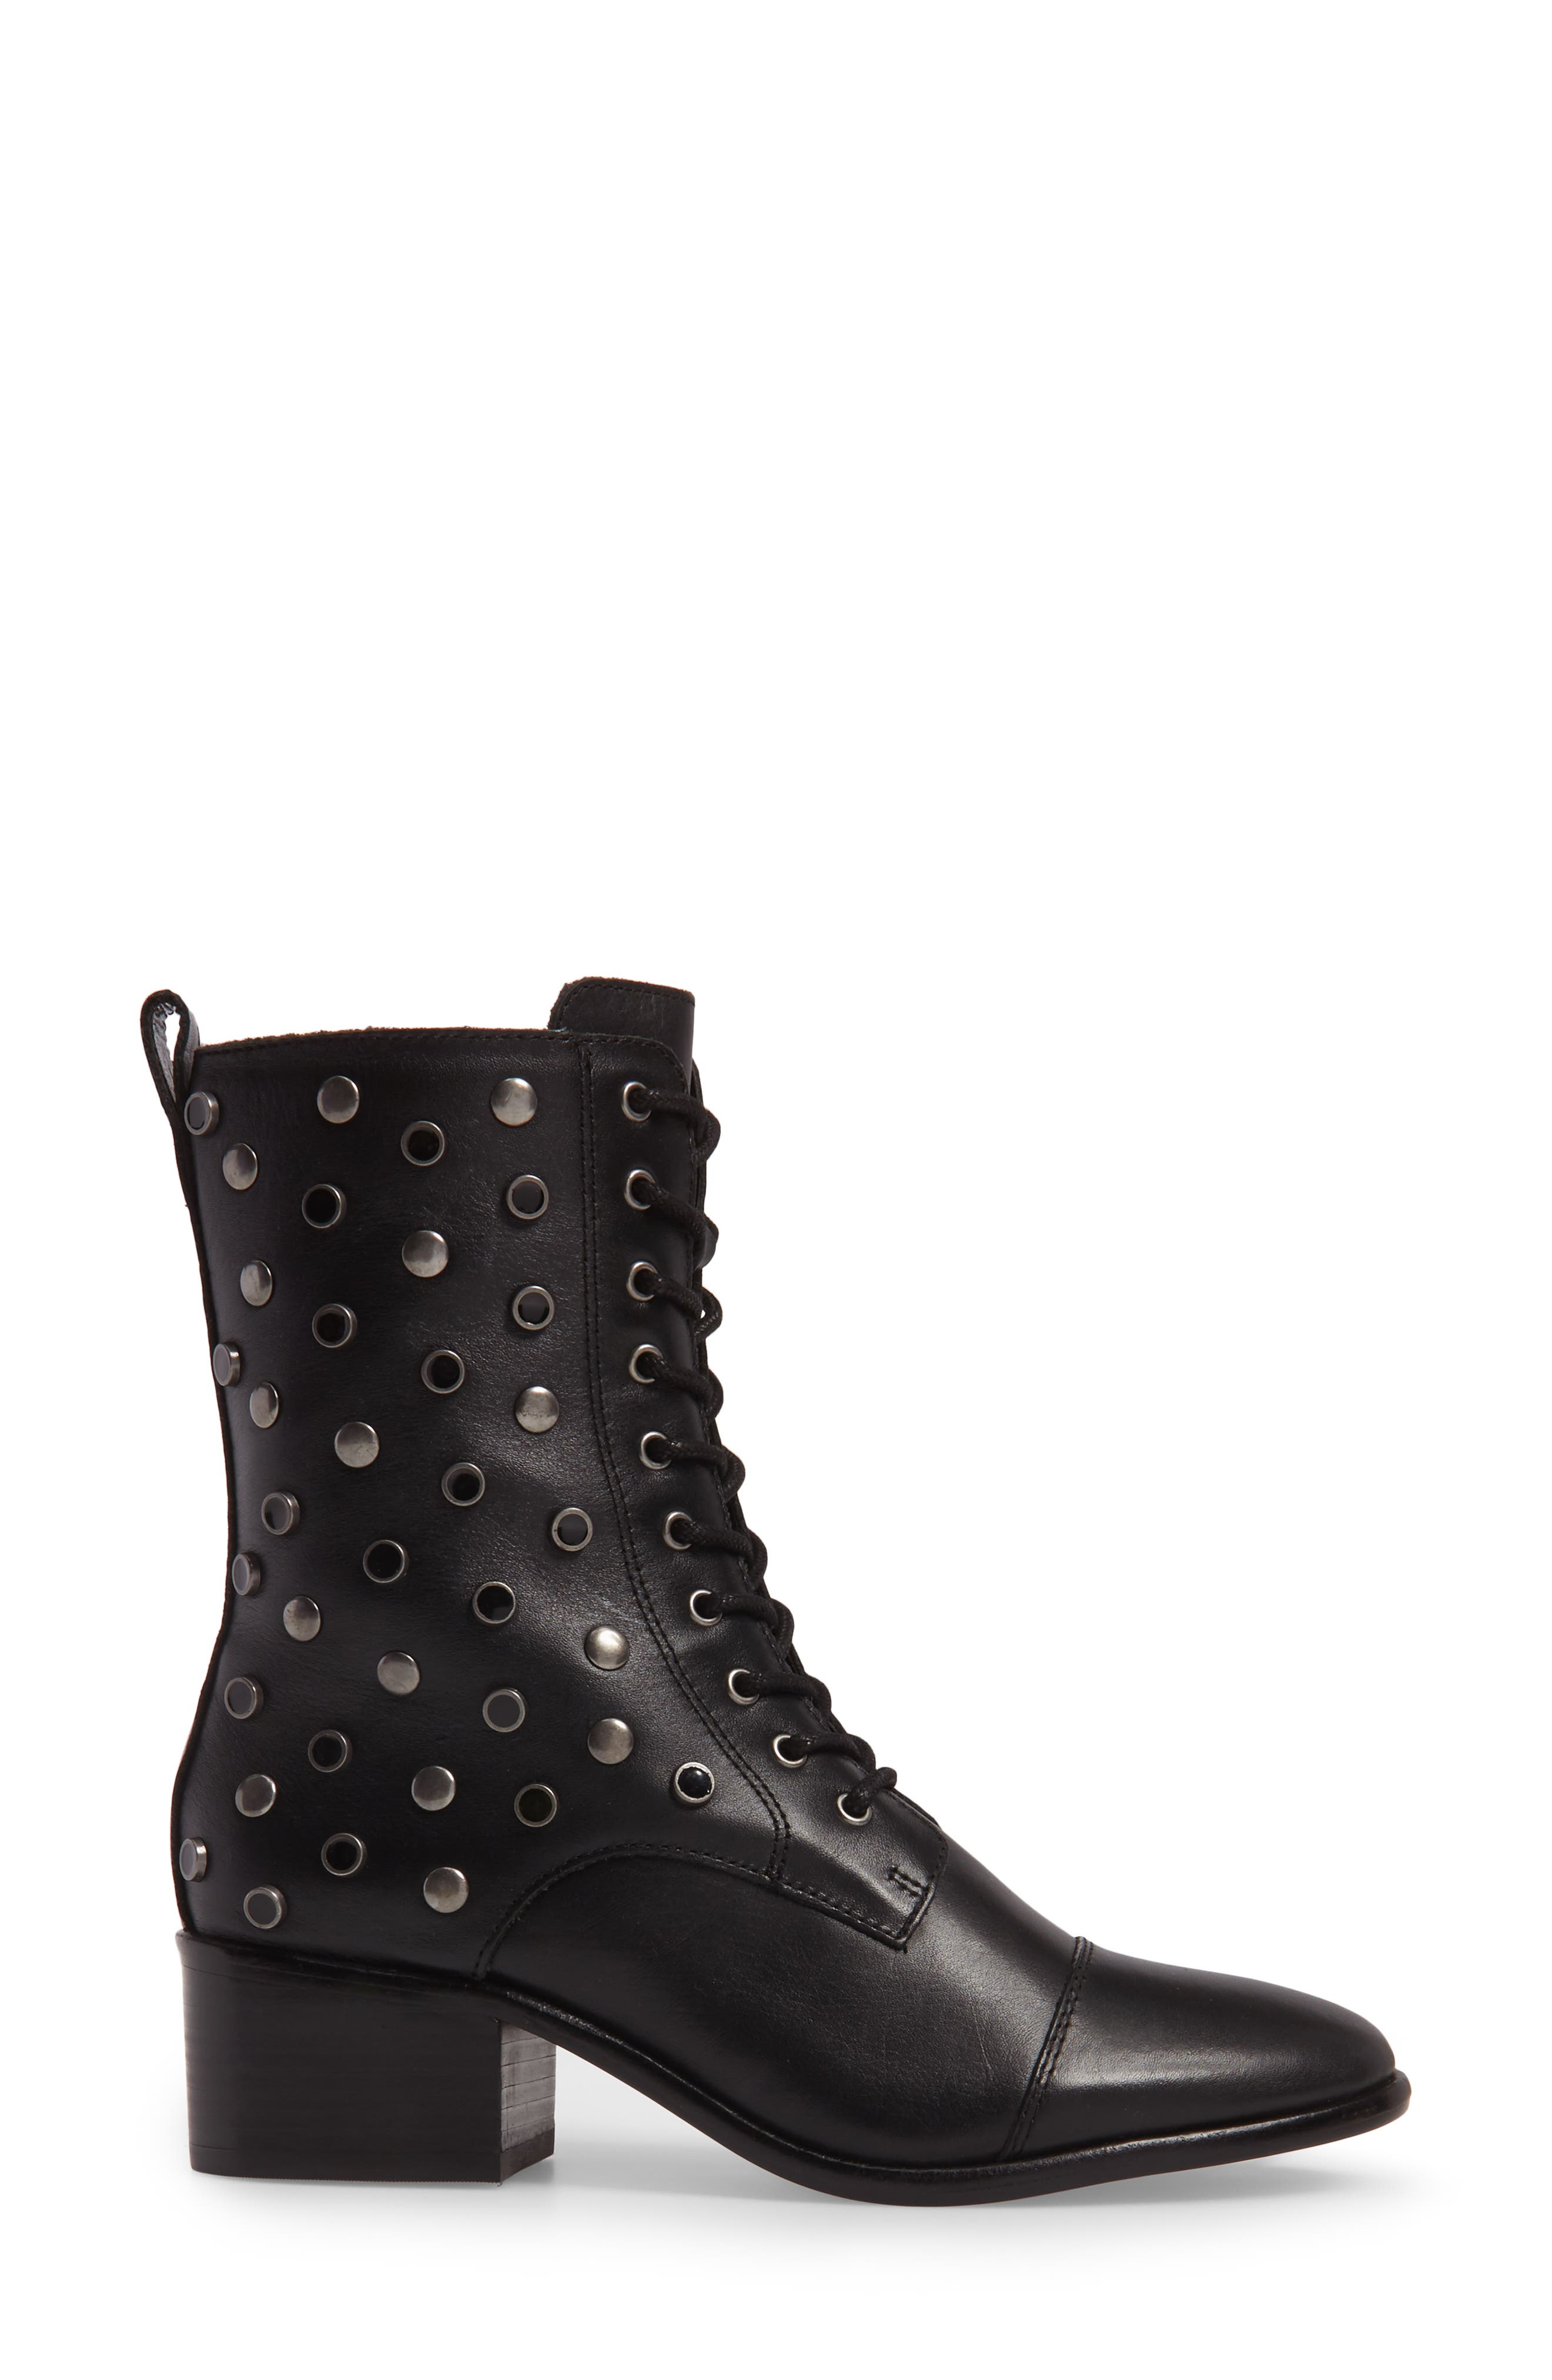 M4D3 Grazie Embellished Water Resistant Boot,                             Alternate thumbnail 3, color,                             001